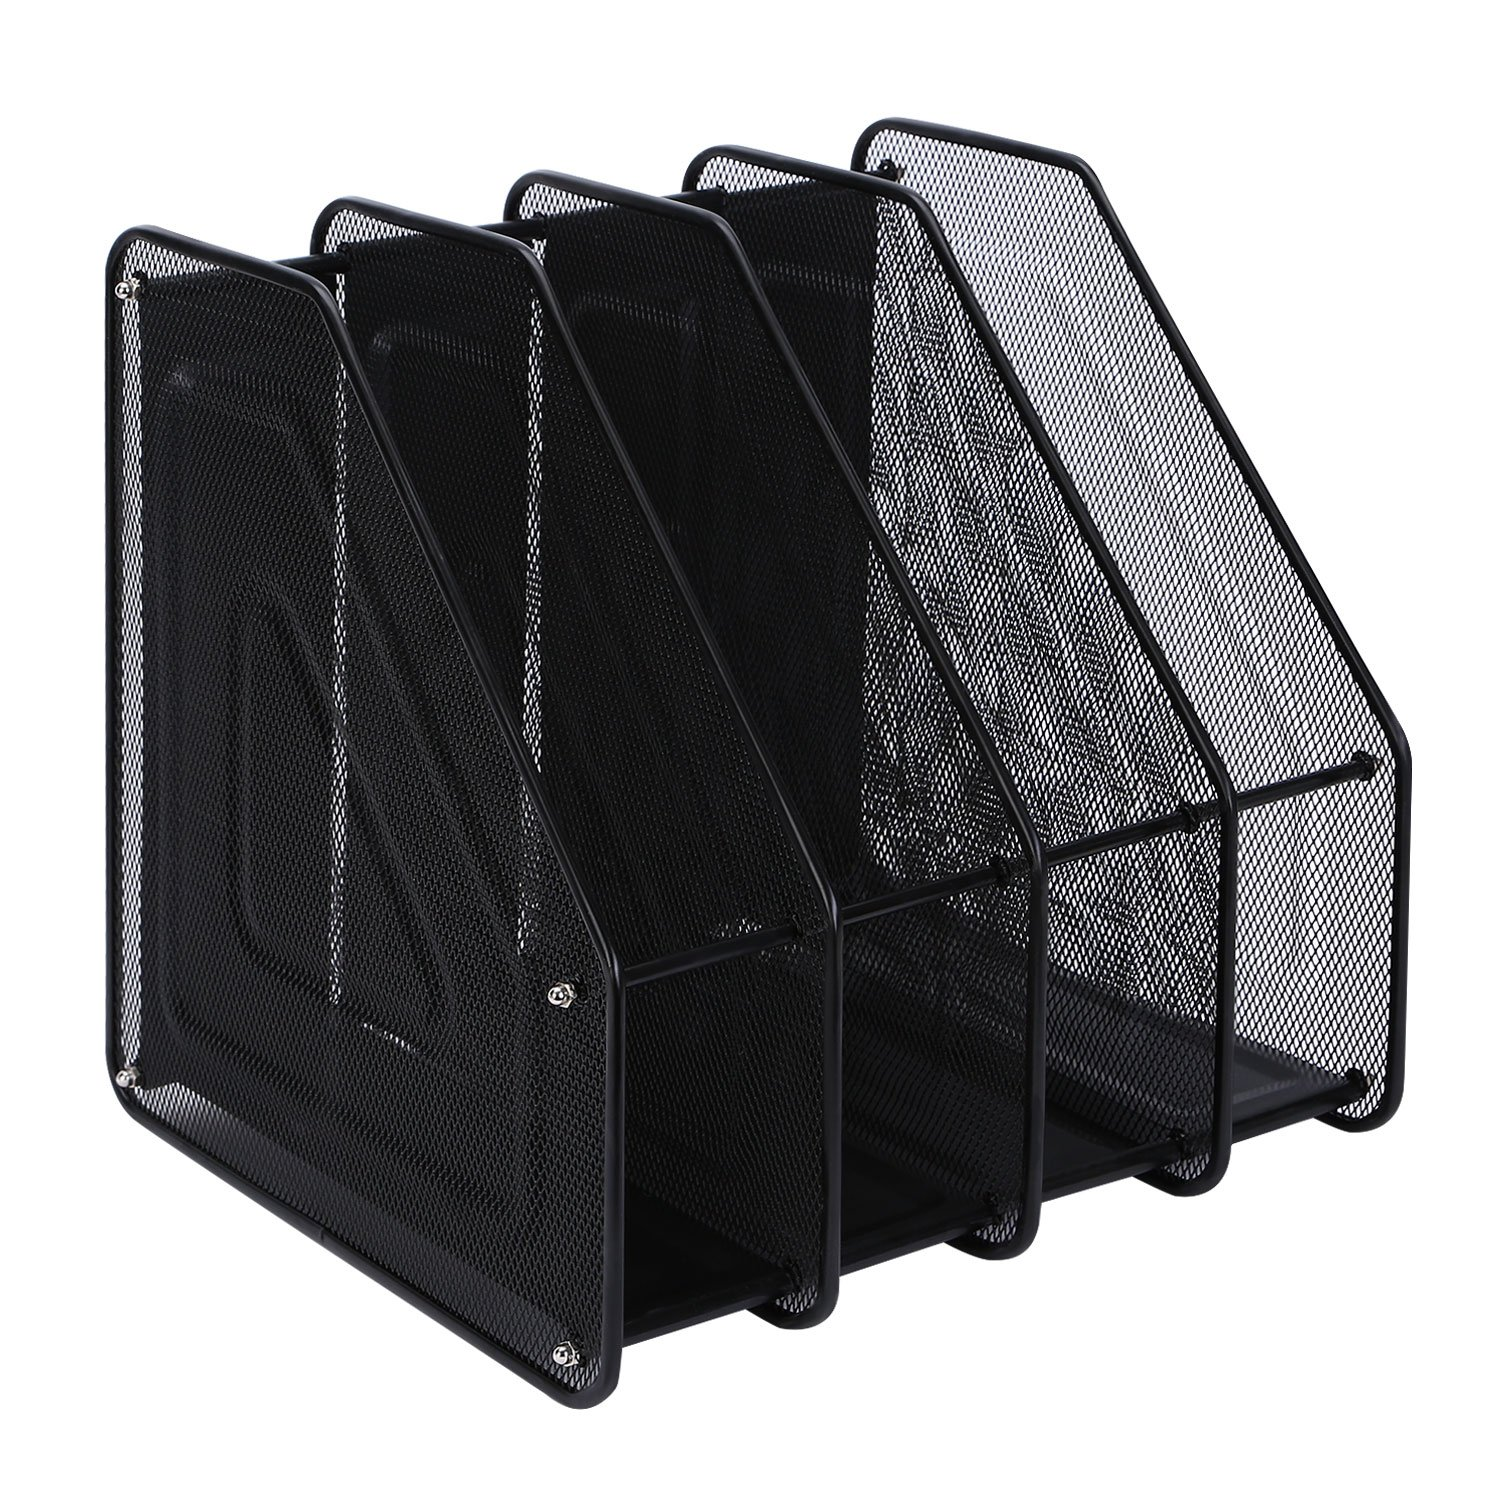 TOROTON File Rack Holder Black 4 Compartments Mesh Metal Home Office Desk Book Sorter Storage Shelf for Paper Magazine Documents and Books